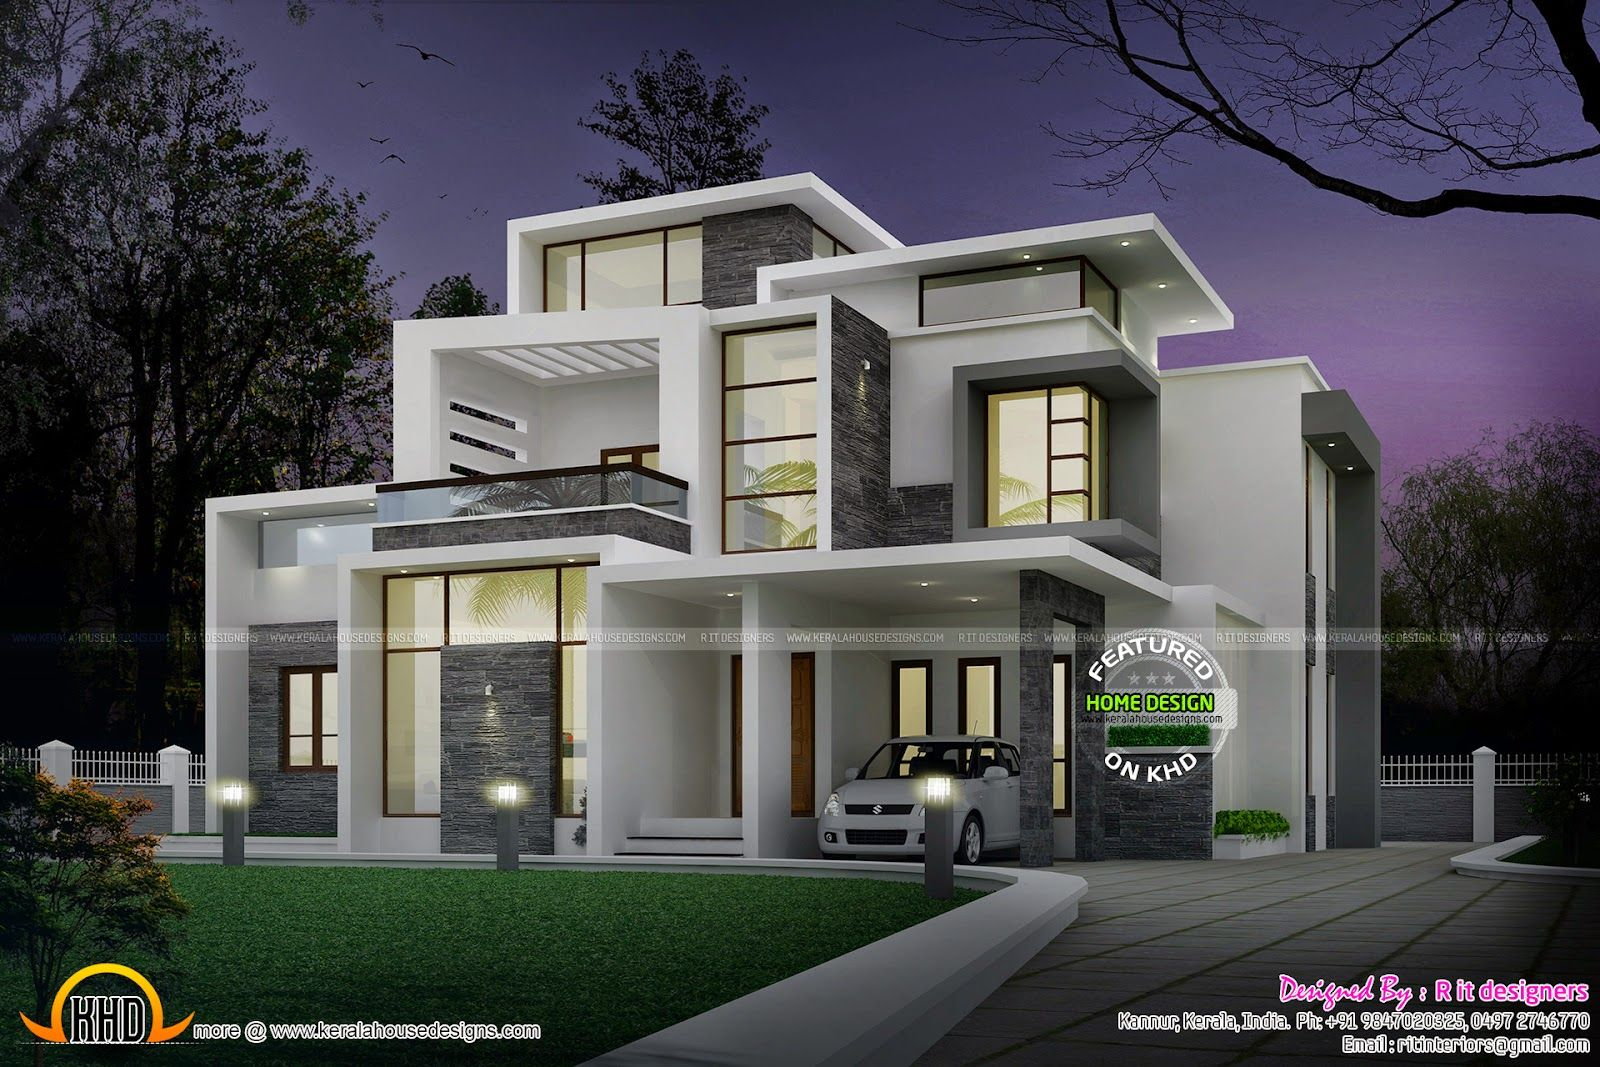 Grand contemporary home design kerala home design and for Modern house plans with photos